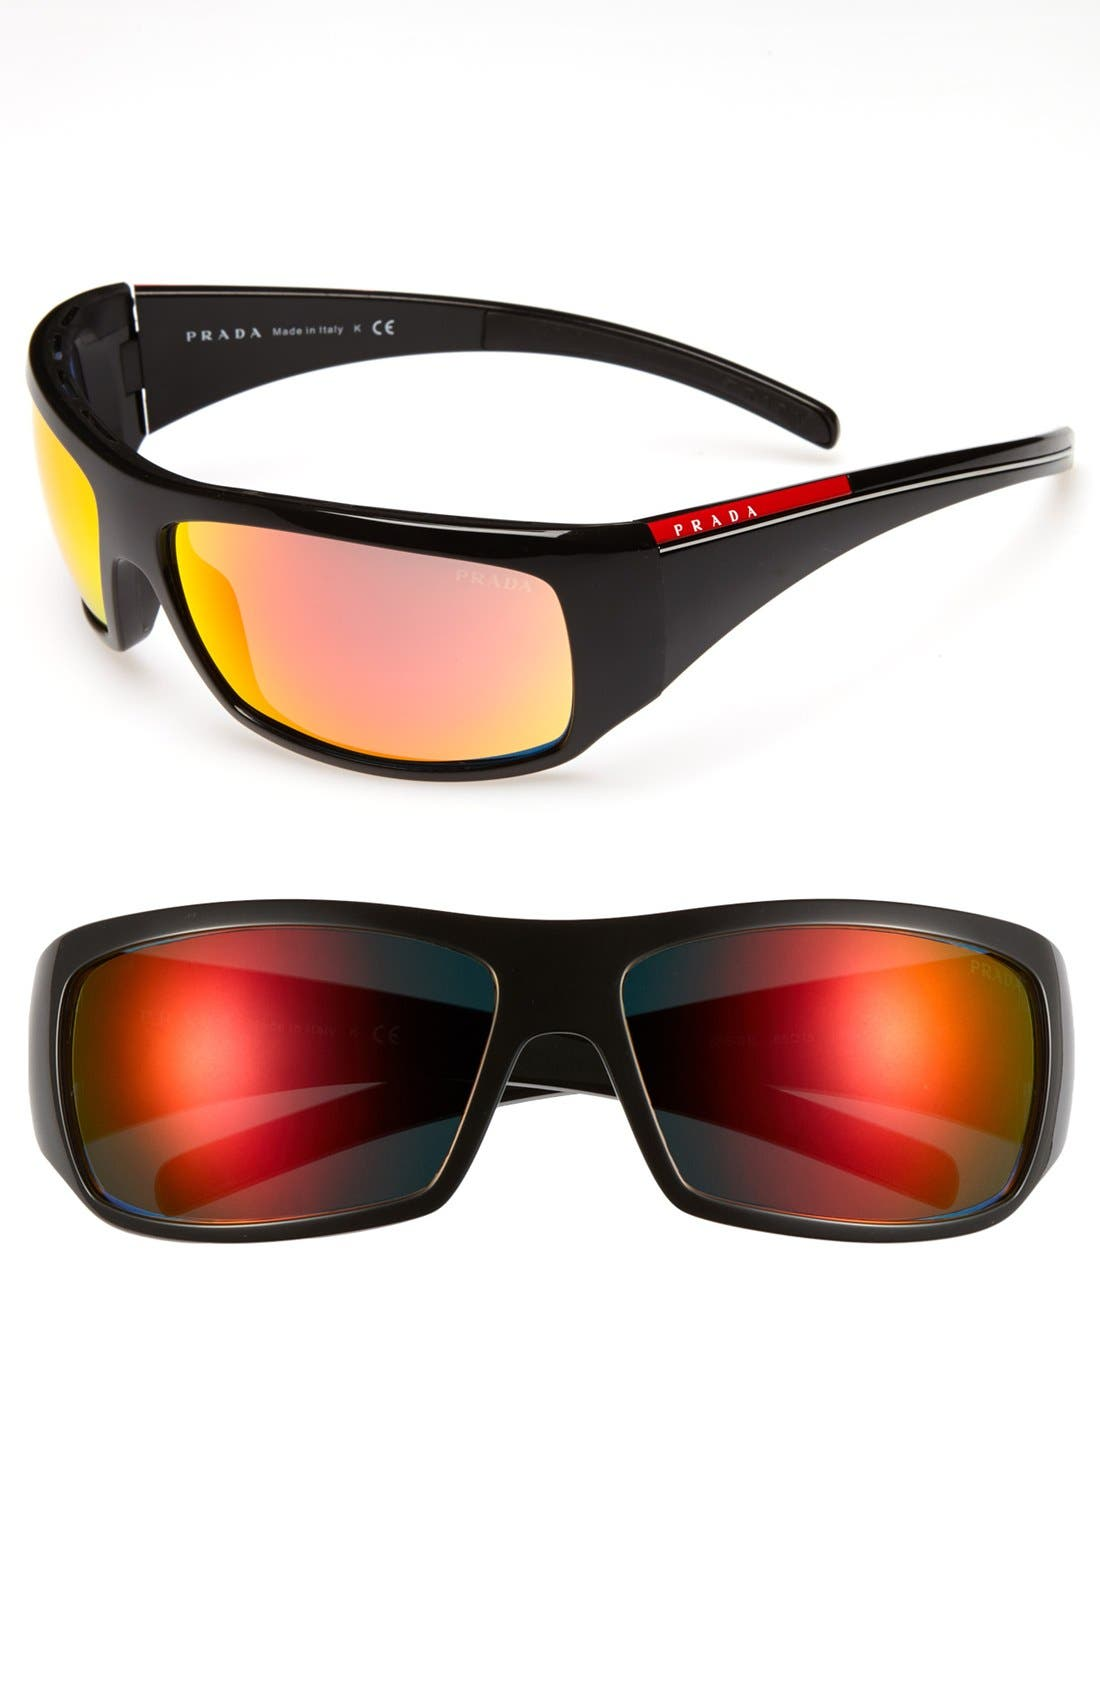 Main Image - Prada 65mm Wraparound Sunglasses